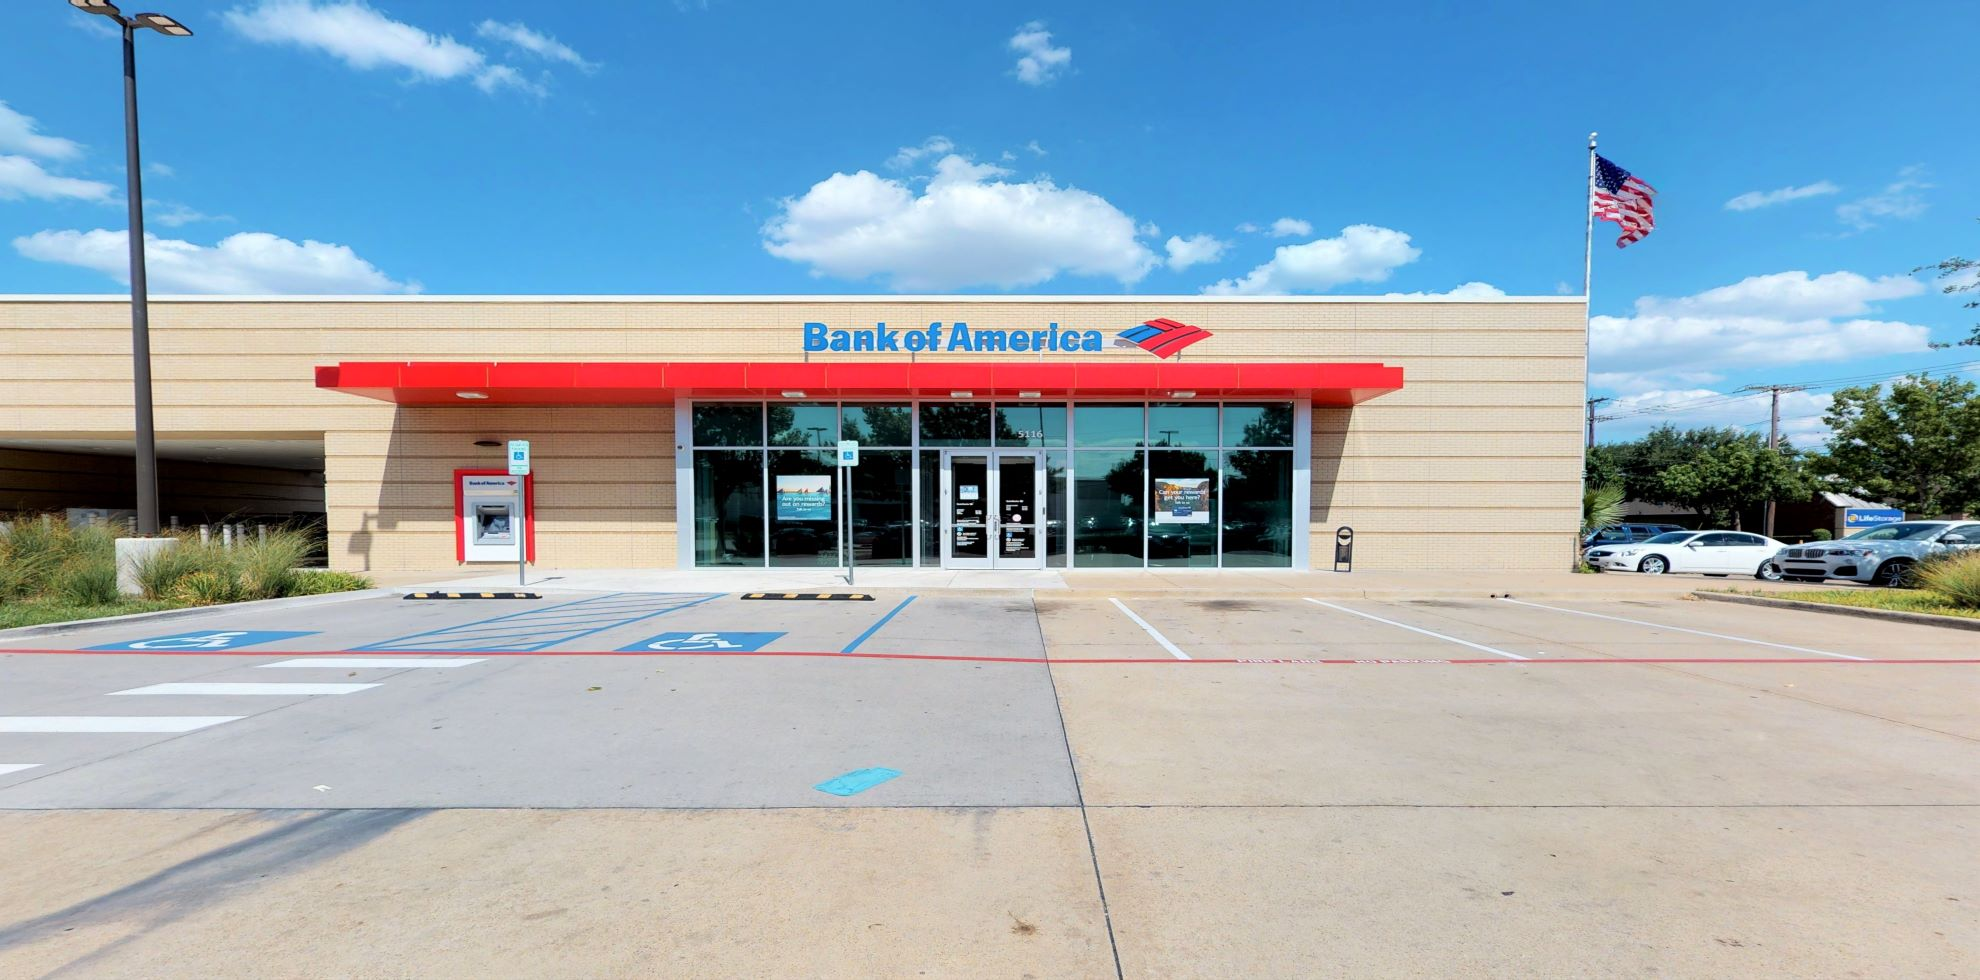 Bank of America financial center with drive-thru ATM   5116 Greenville Ave, Dallas, TX 75206